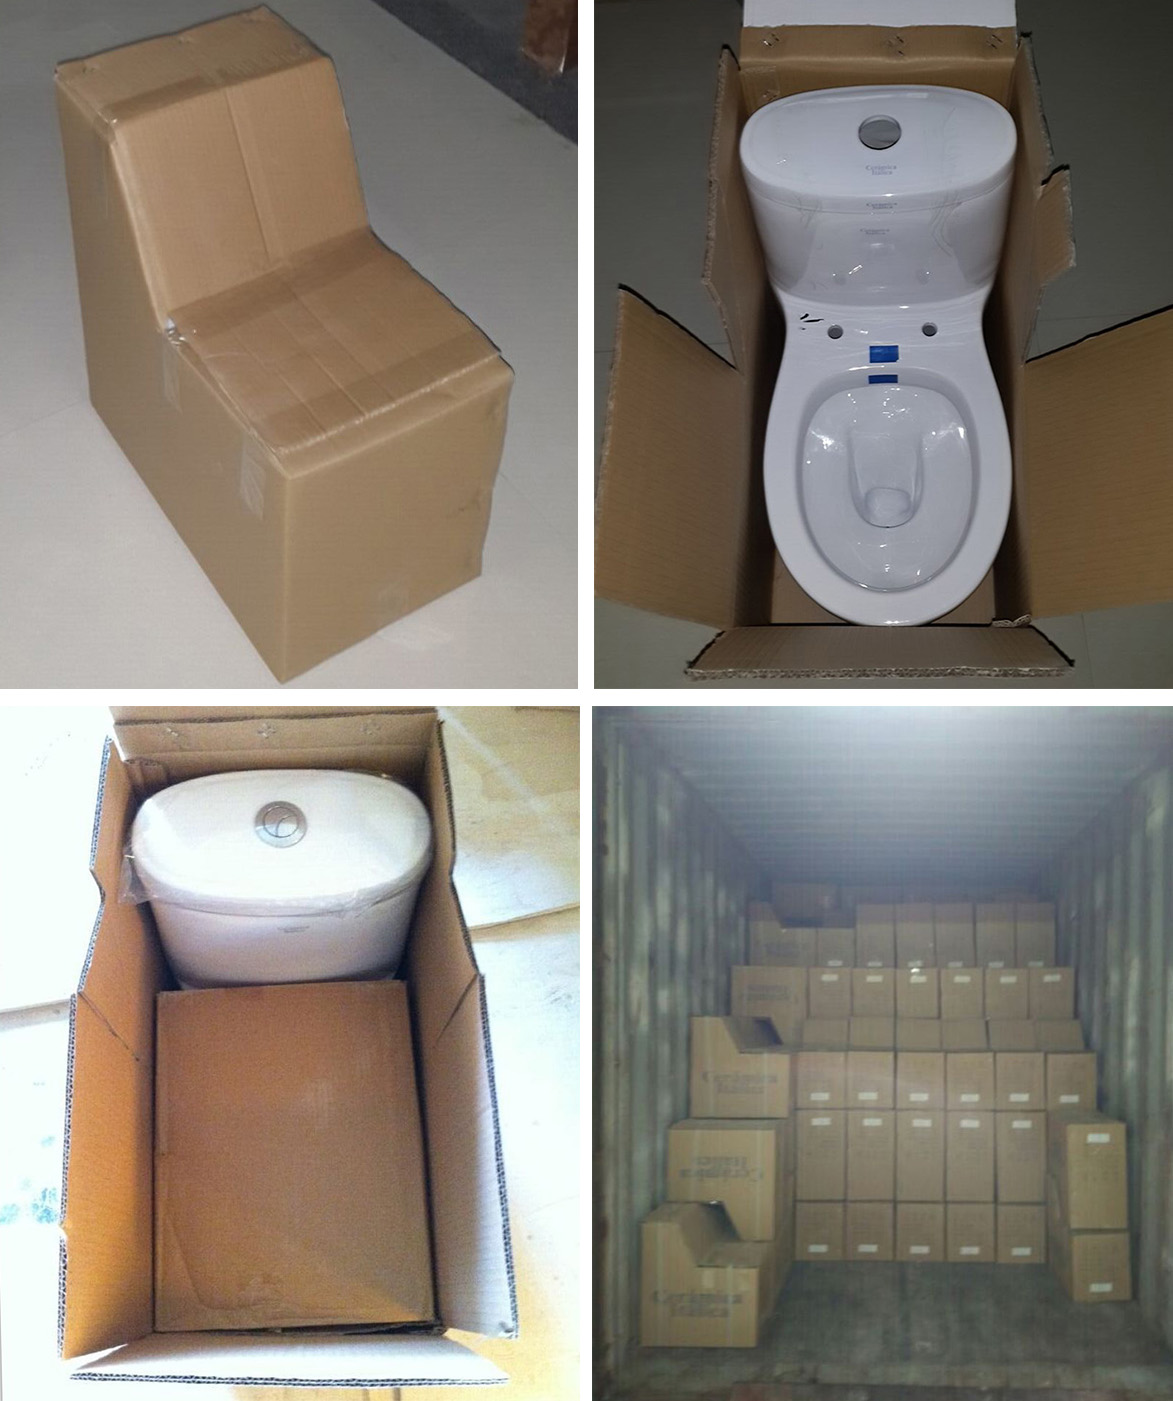 Buy online china china one piece outlet to wall distance 100mm toilet